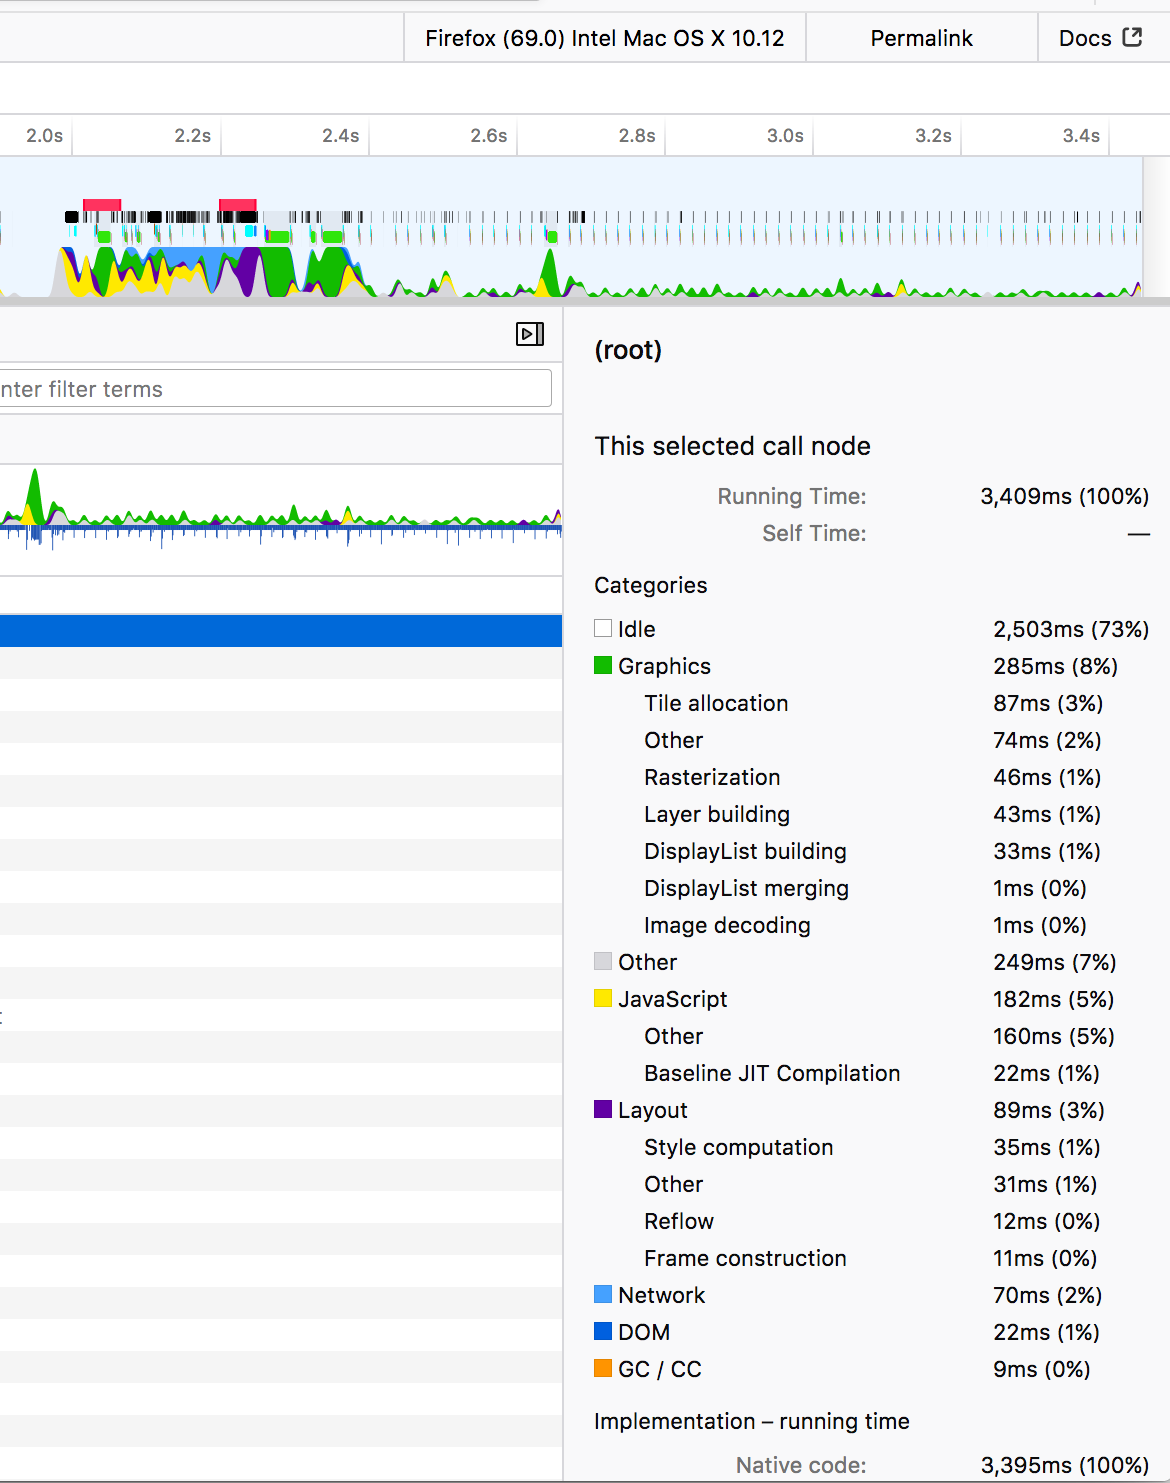 Showing the submenu in the Firefox Profiler, breaking down the categories that the selected samples fall into.